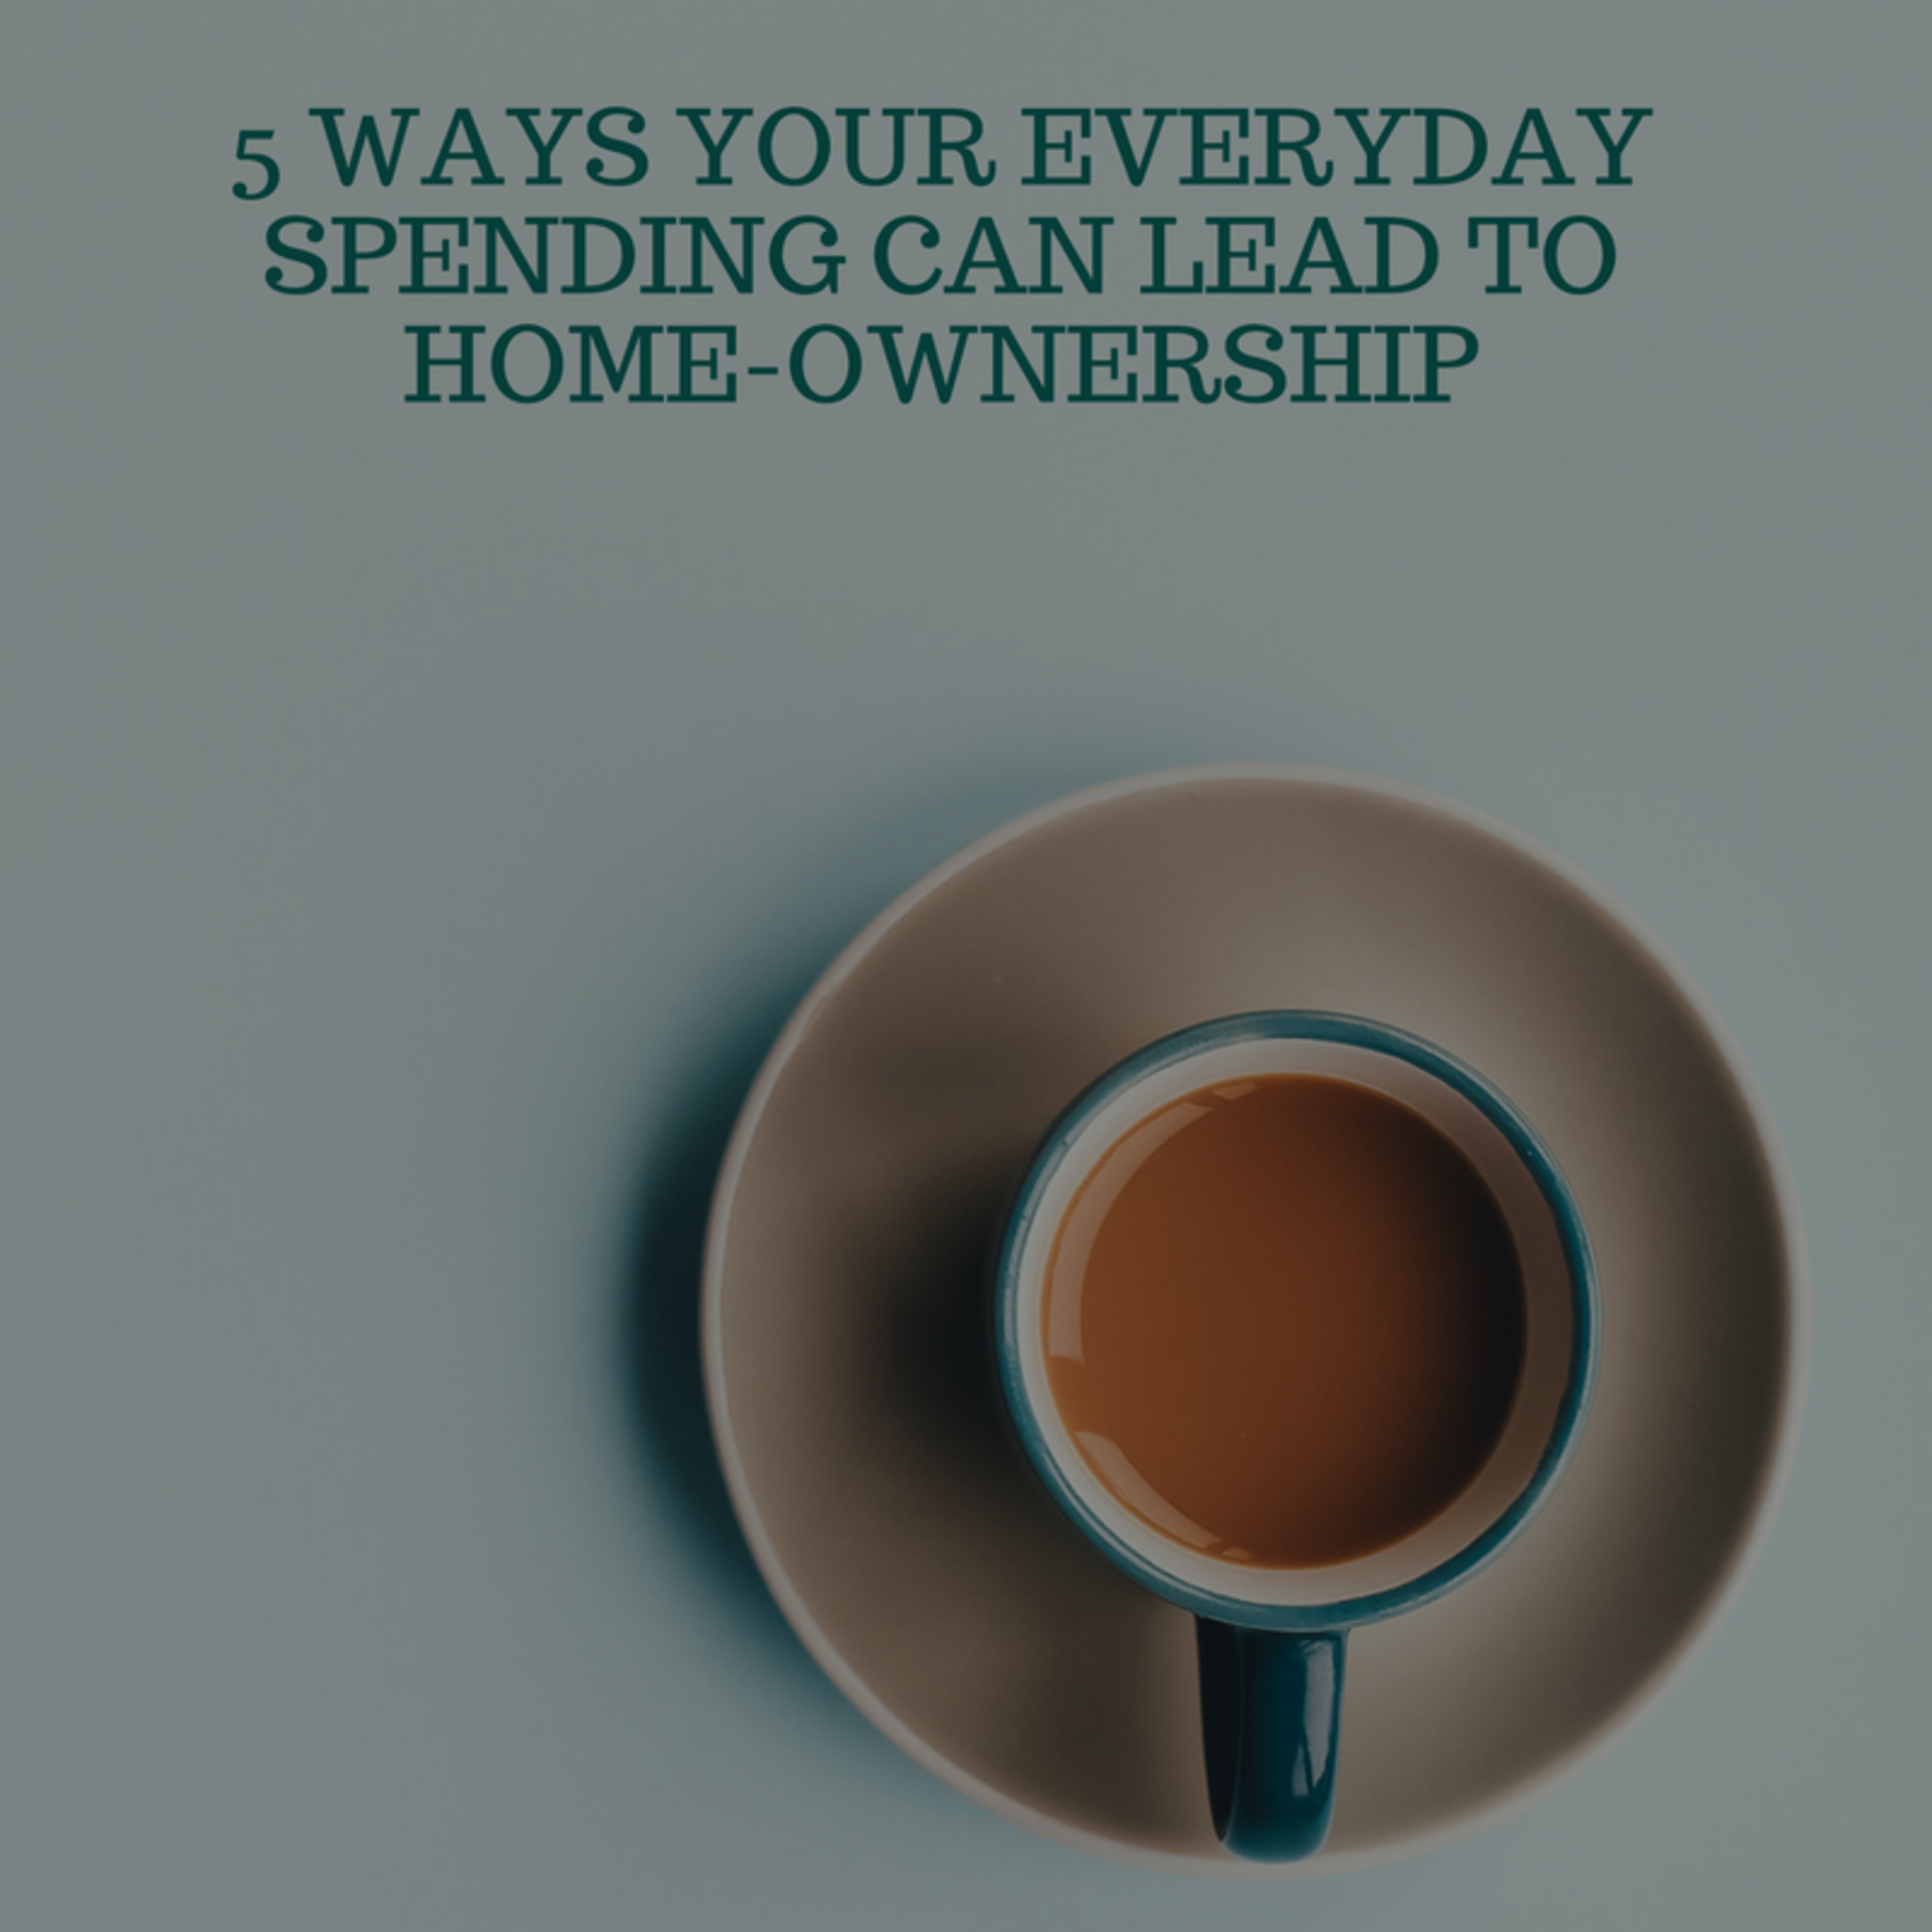 5 Ways your everyday spending can lead to home-ownership